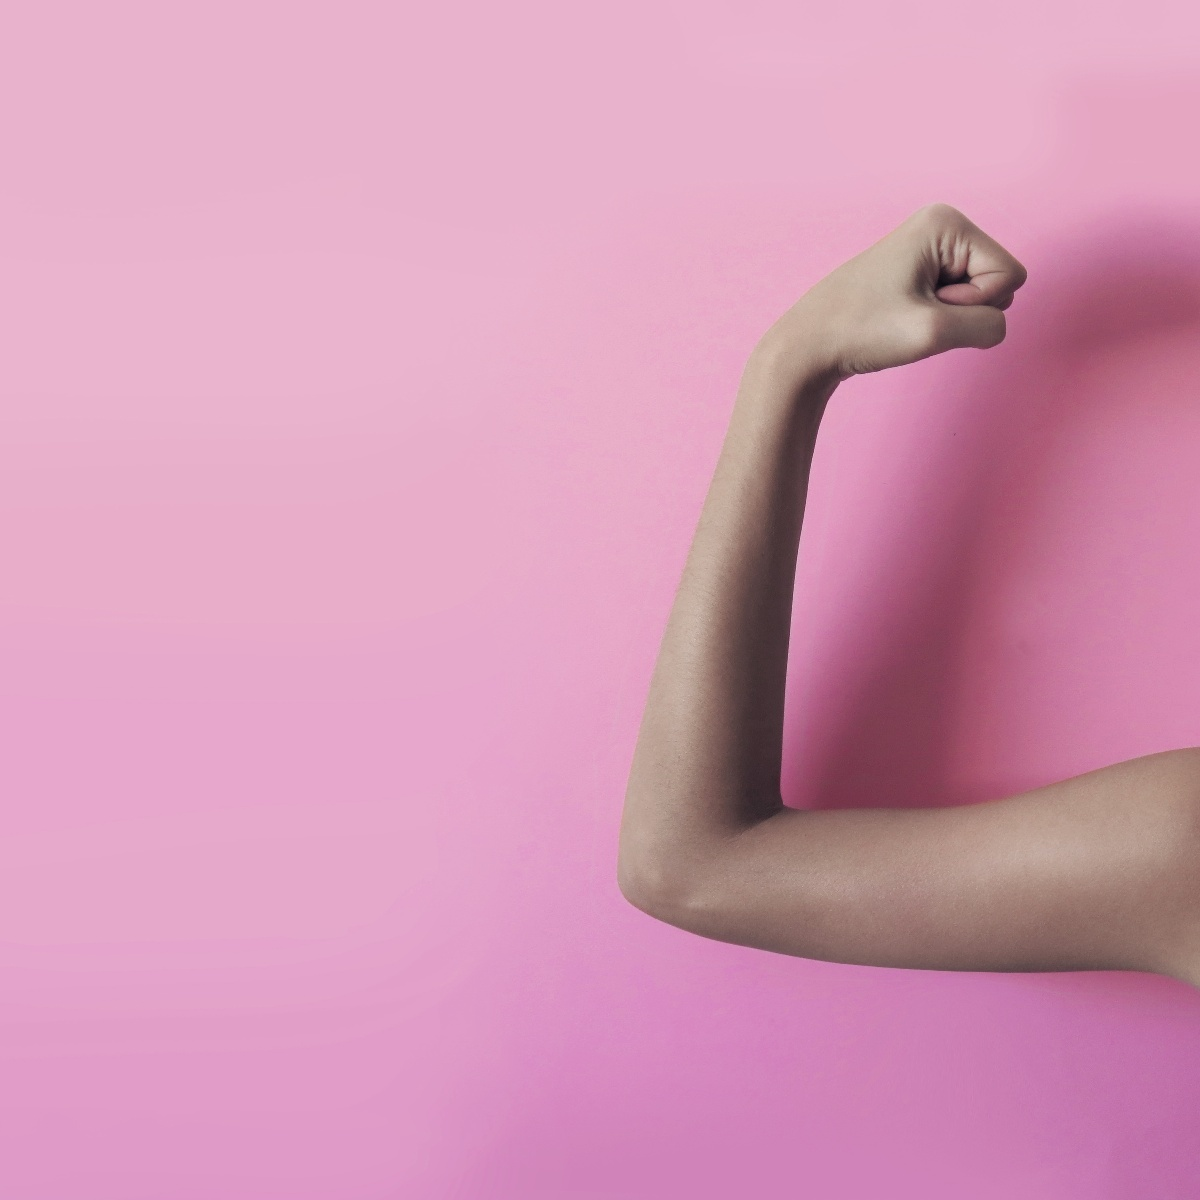 strong-feminist-woman_t20_yRNk8x-1